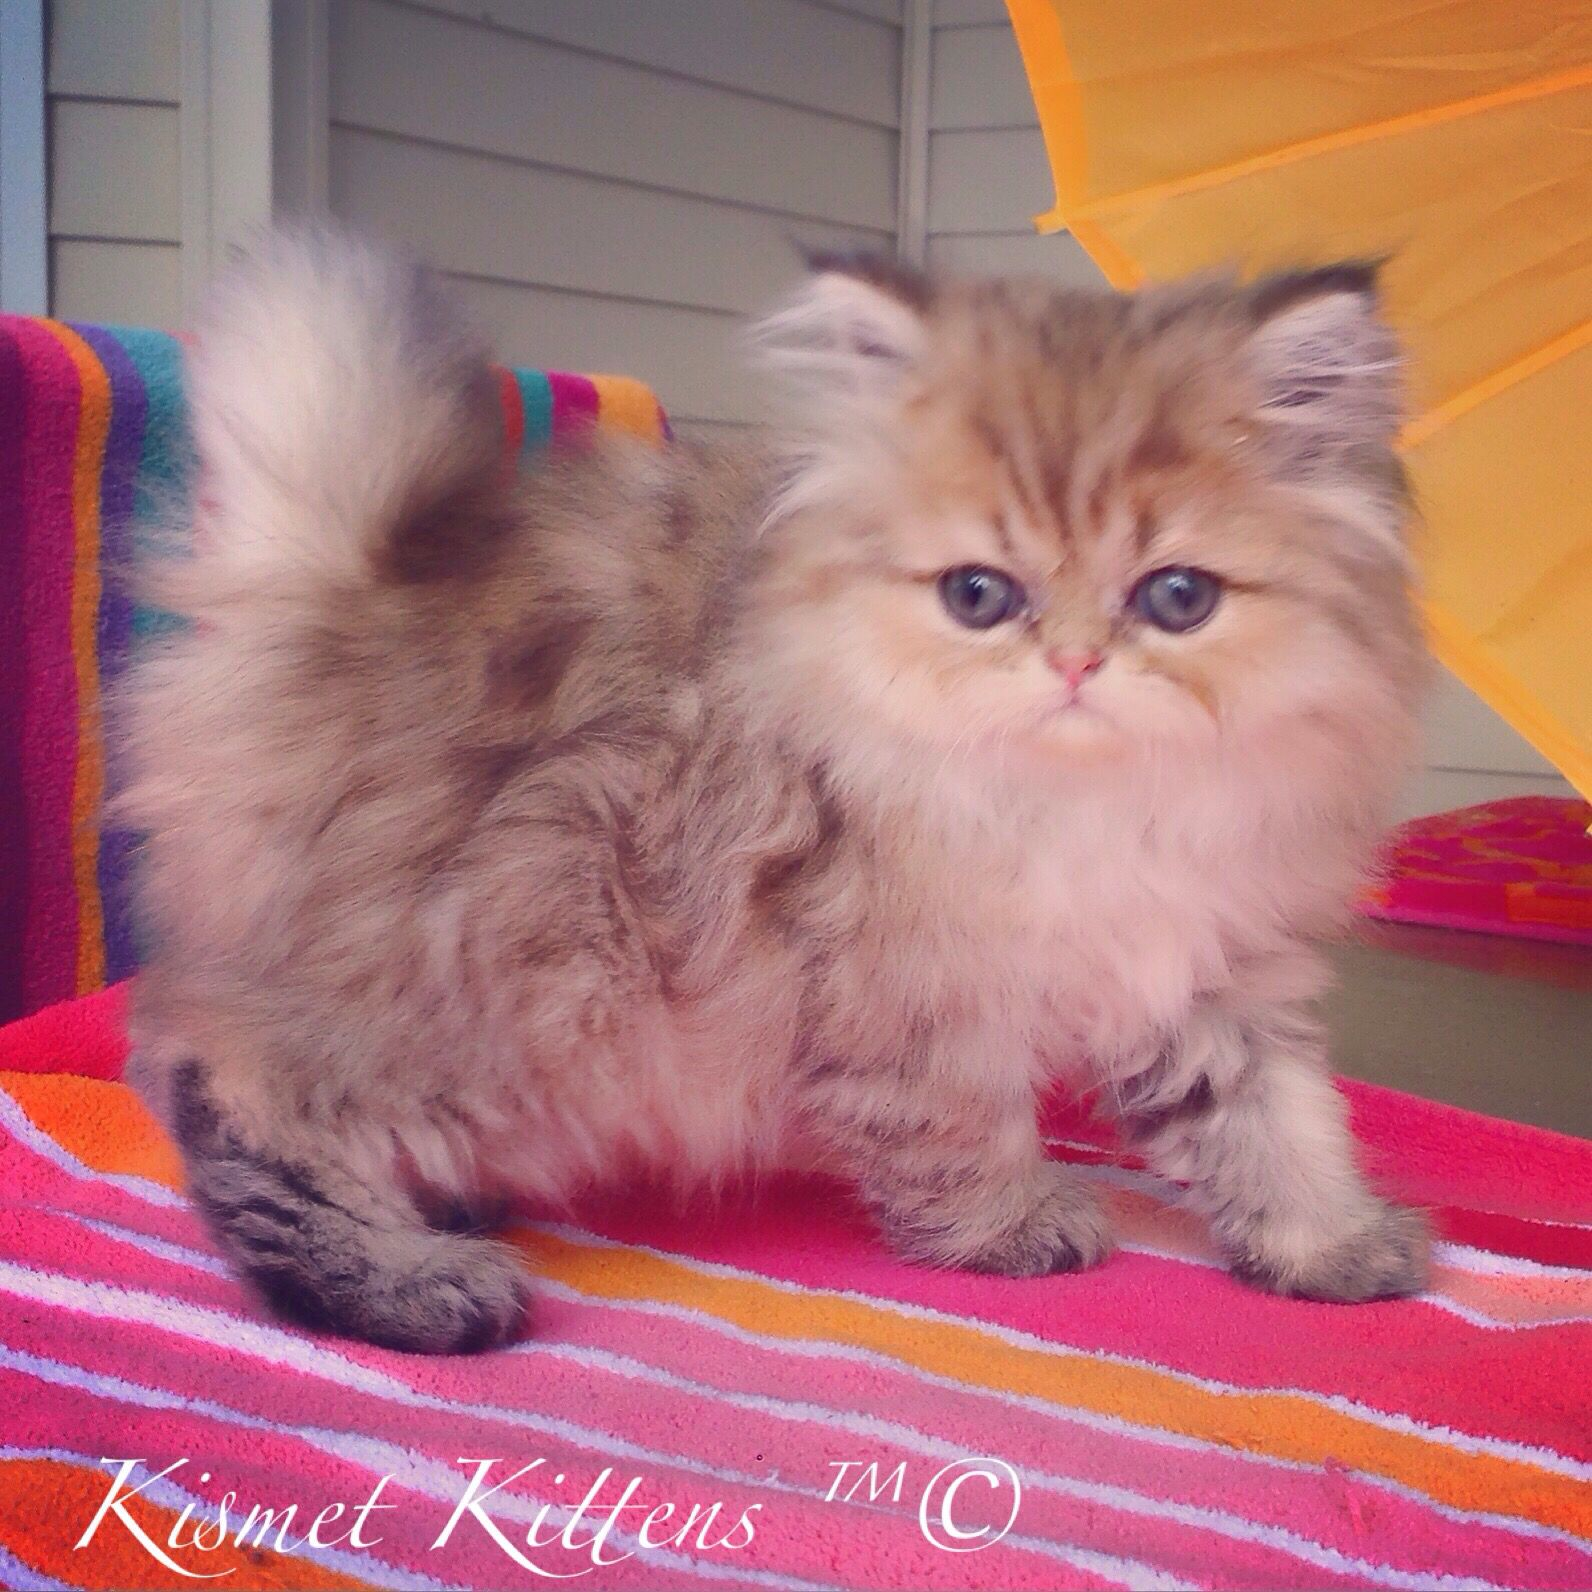 Kismet Kittens For Golden Chinchilla Shaded Doll Face Persian Kitten With Green Eyes Female Ready Teacup Persian Kittens Cute Cats And Dogs Persian Kittens